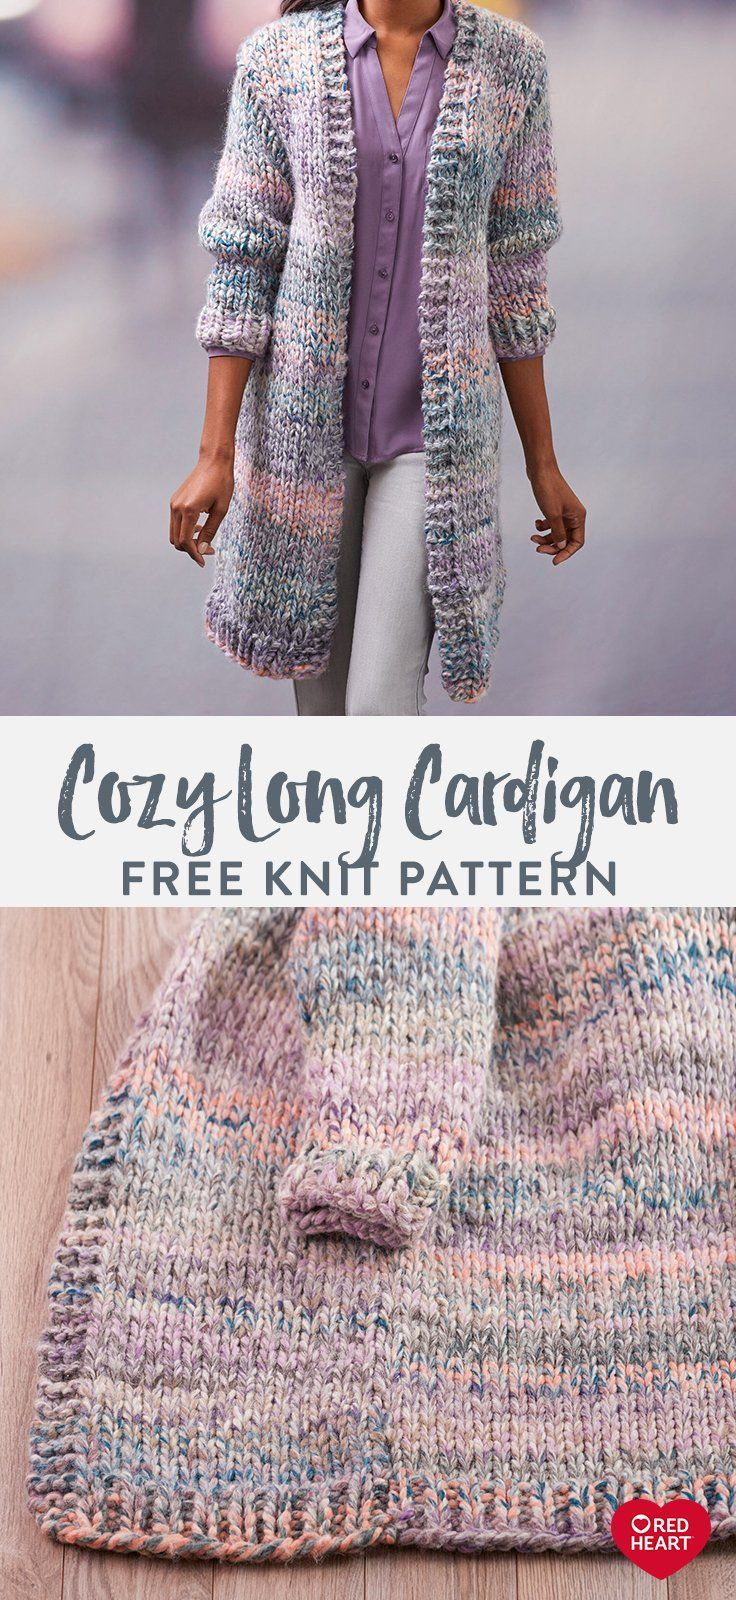 Cozy Long Cardigan free knit pattern in Collage yarn. Make a statement with this...